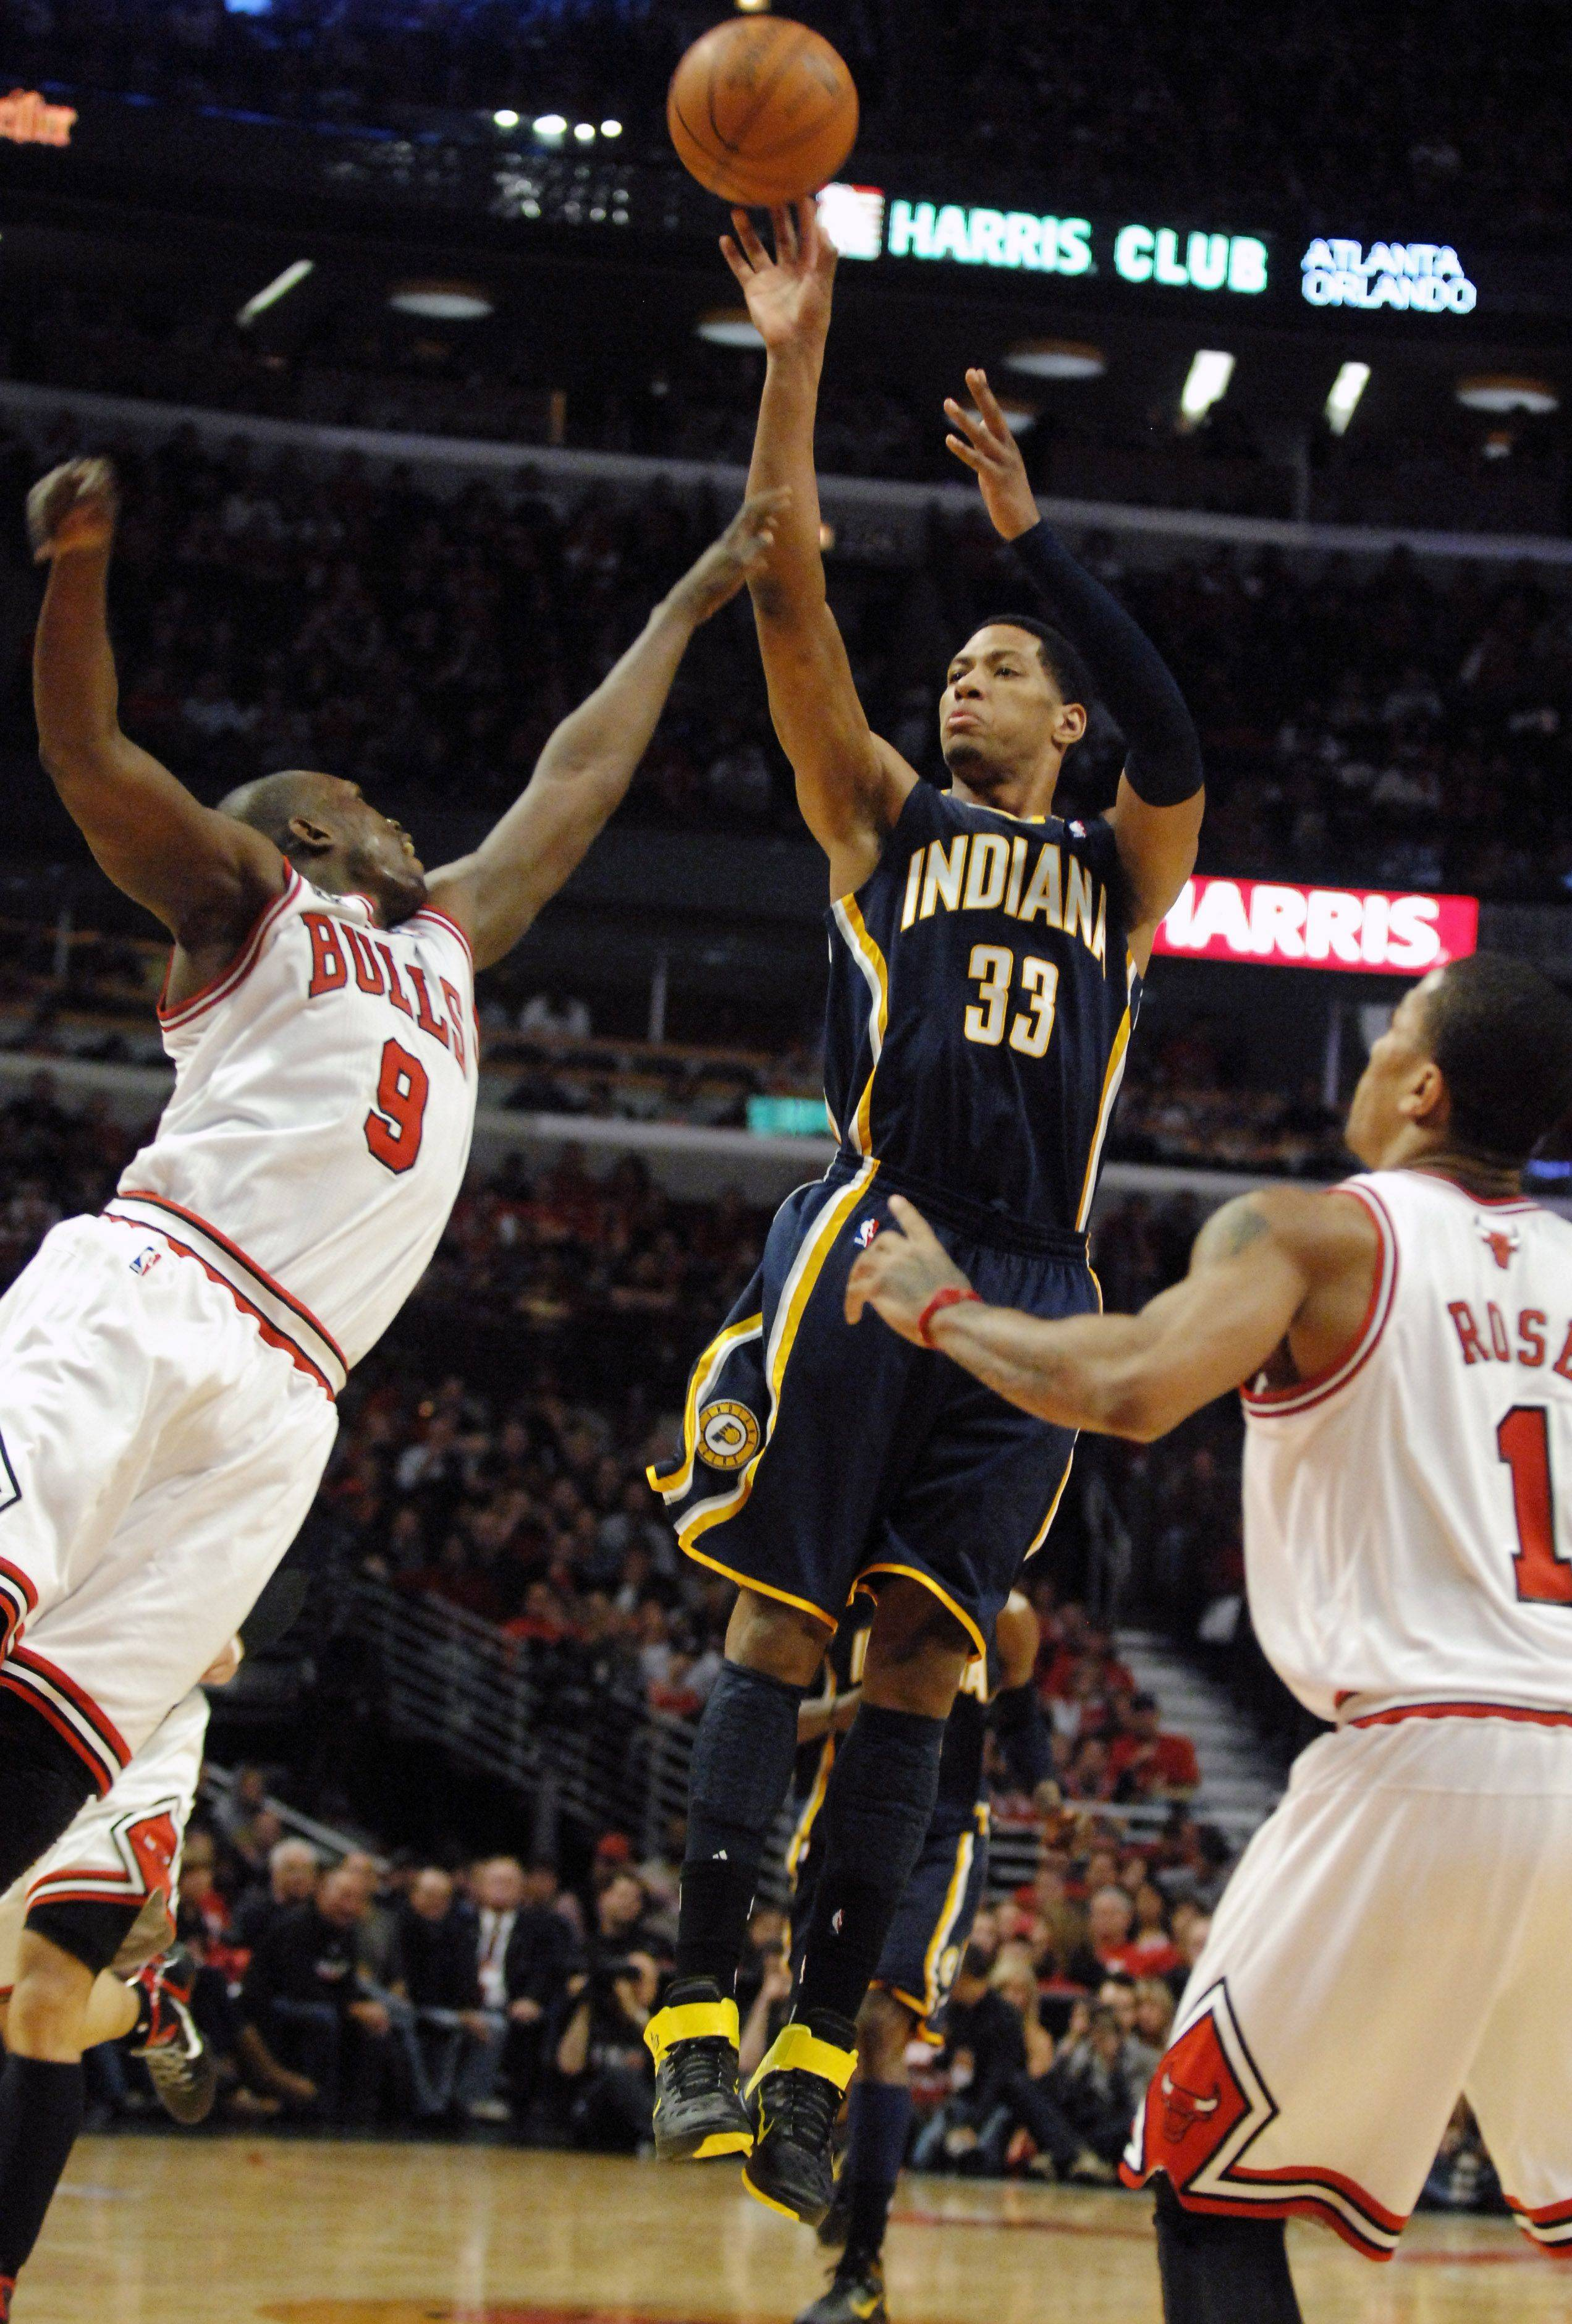 Indiana Pacers small forward Danny Granger (33) drains a three-pointer over Chicago Bulls small forward Luol Deng (9) during Game One of the NBA Eastern Conference Quarterfinals Saturday at the United Center in Chicago.